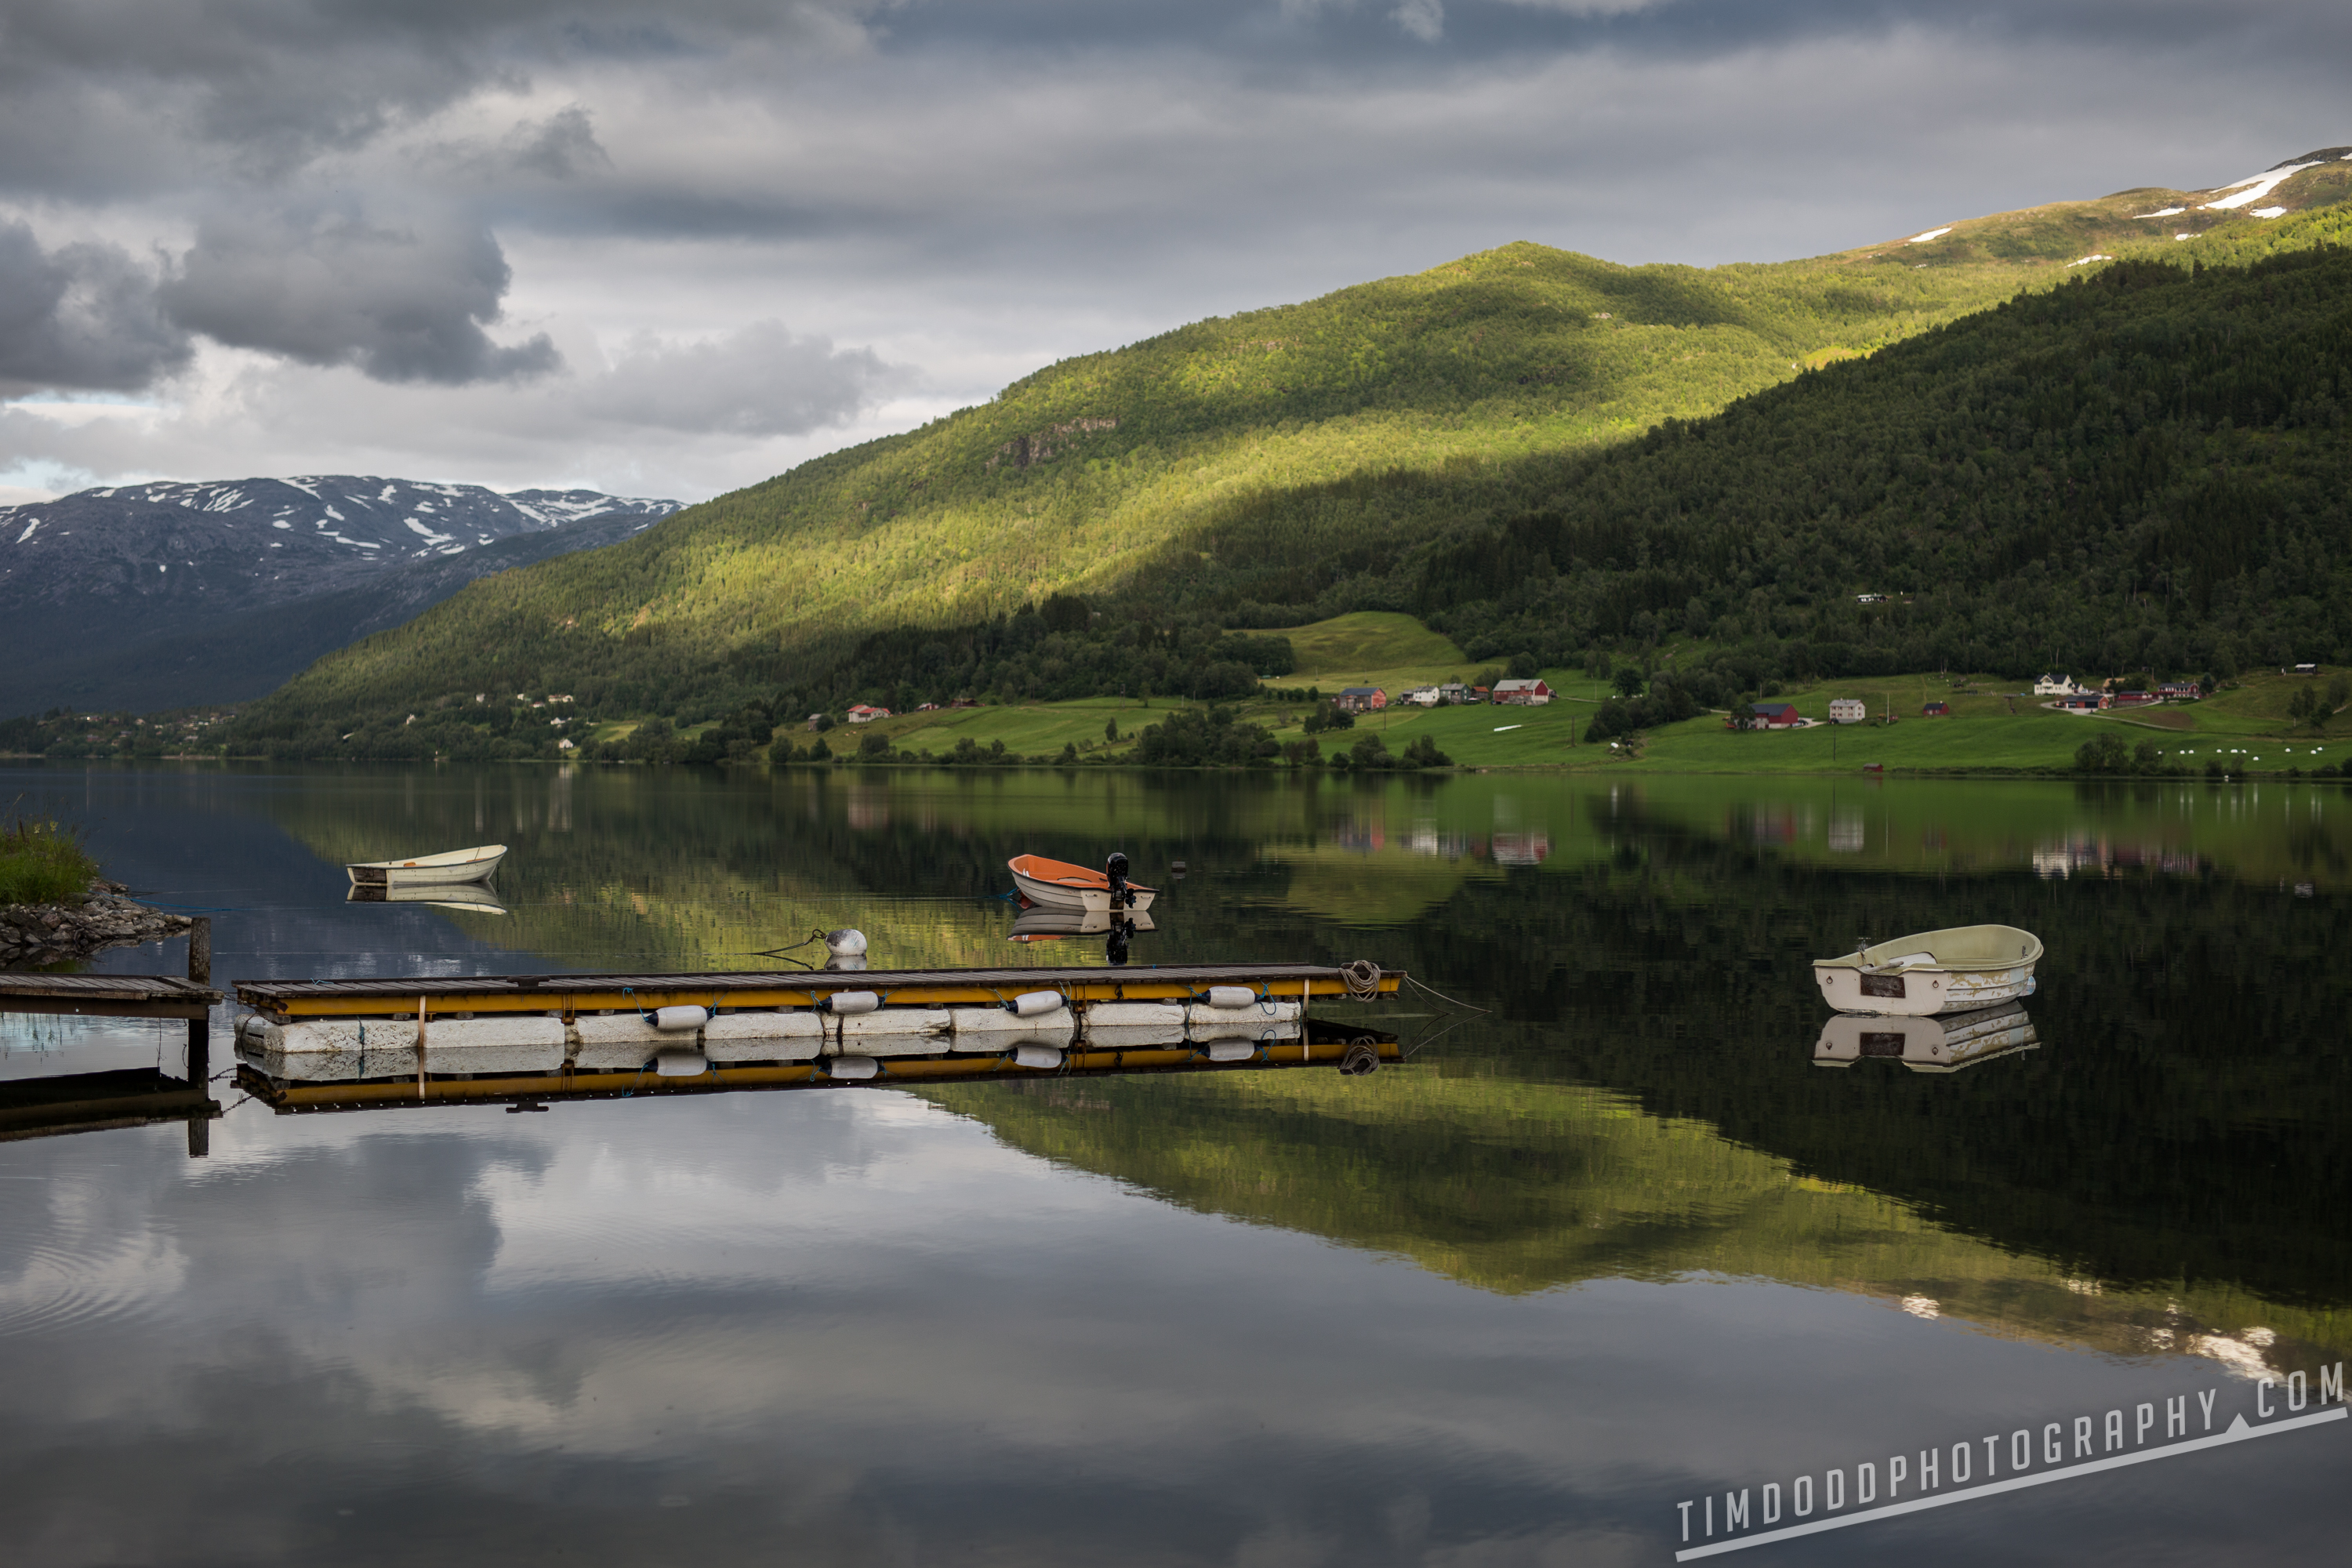 """Voss Norway mirror lake reflection boat beautiful mountains 60°47'31"""" N 6°34'28"""" E 1-1000 sec at f - 2.0 ISO 100 Canon EOS 5D Mark III Sigma 50mm F1.4 Art by Tim Dodd Photography"""